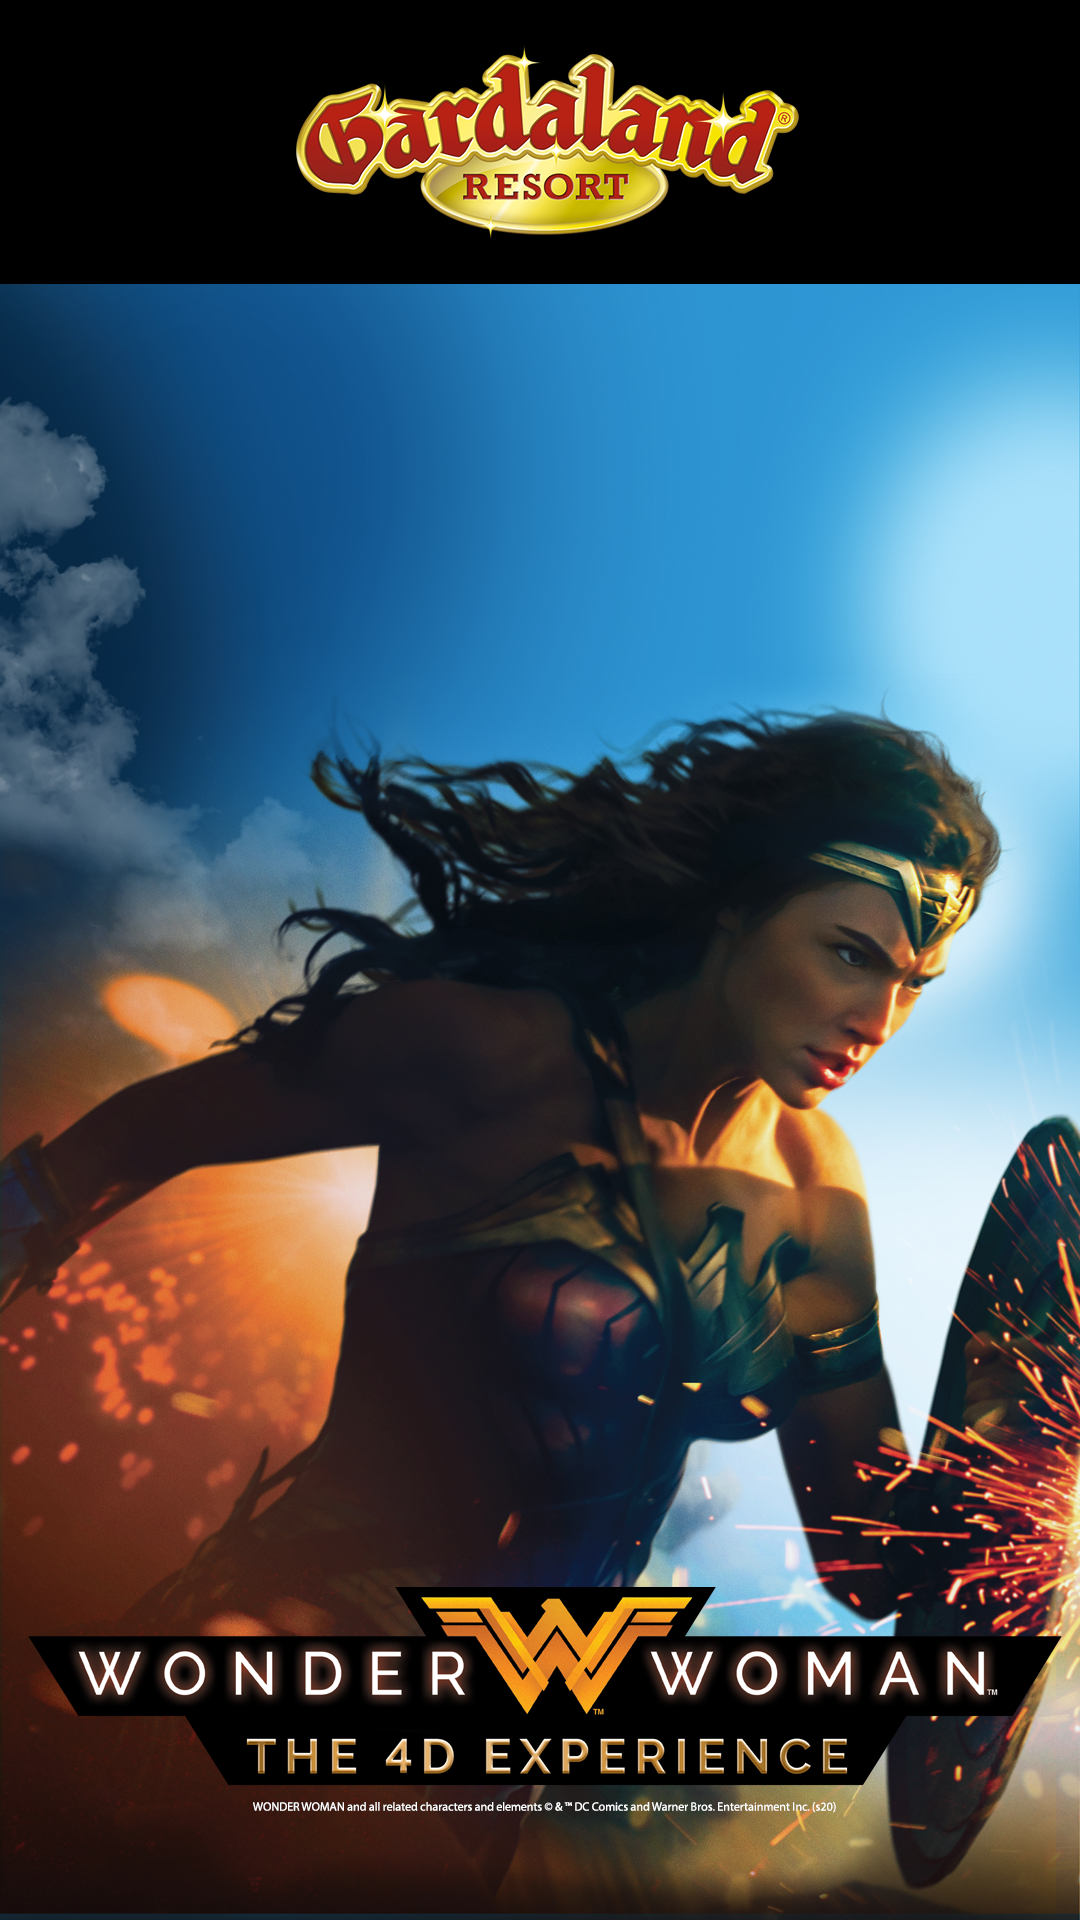 Wonder Woman - The 4D Experience at Gardaland